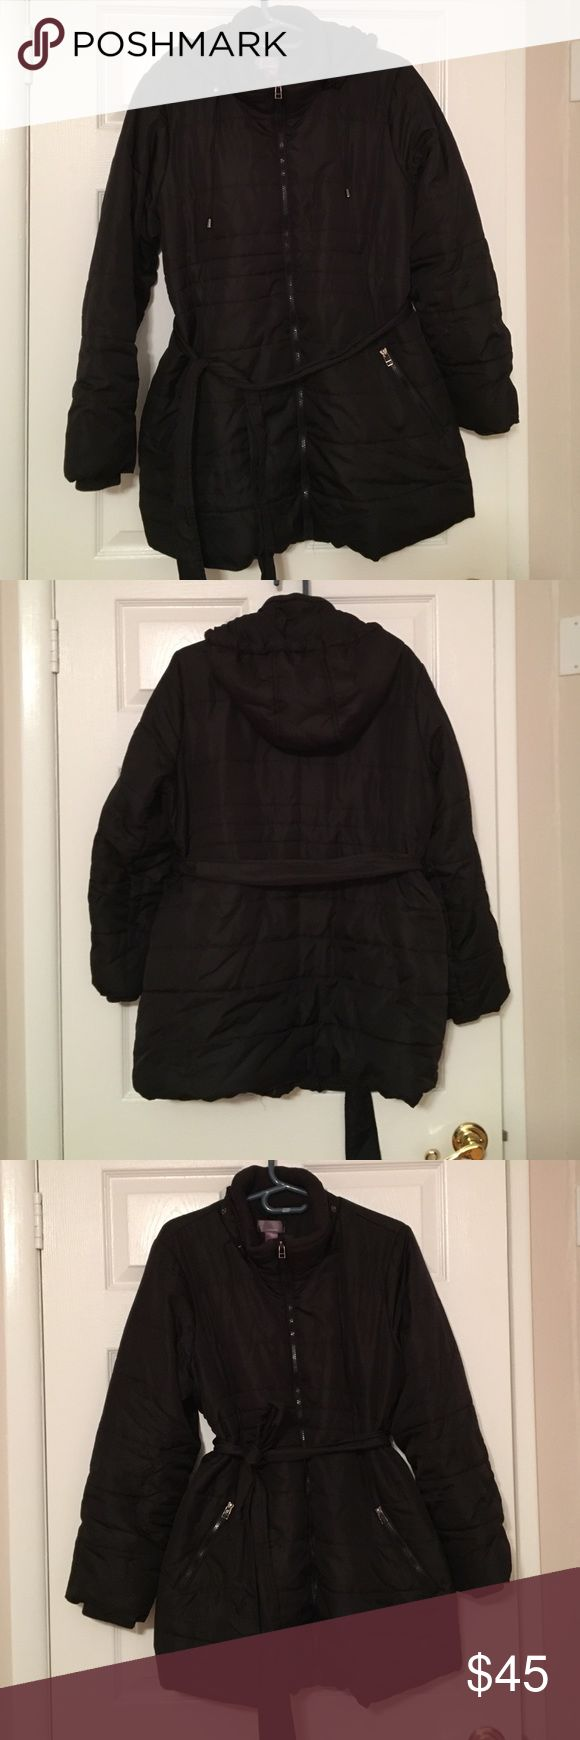 Old Navy Maternity Jacket | Maternity Jackets | Maternity Waterproof Jacket